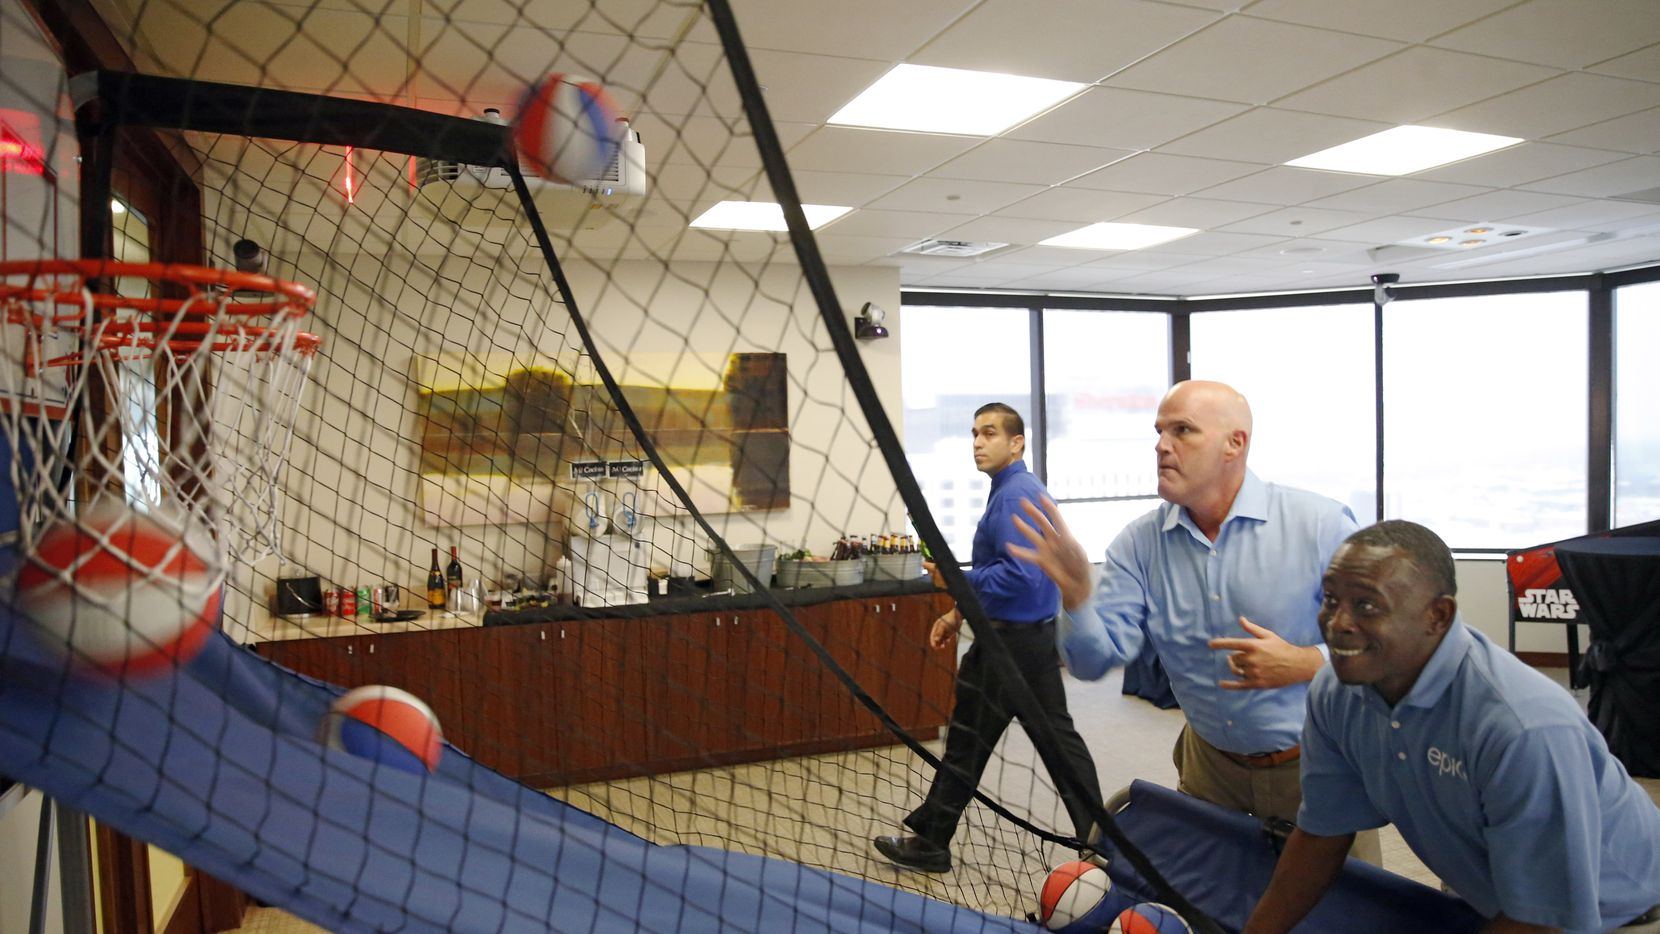 CEO Phil Appenzeller plays a game of basketball with Marcus Morgan during an employee event at Munsch Hardt Kopf & Harr in Dallas.